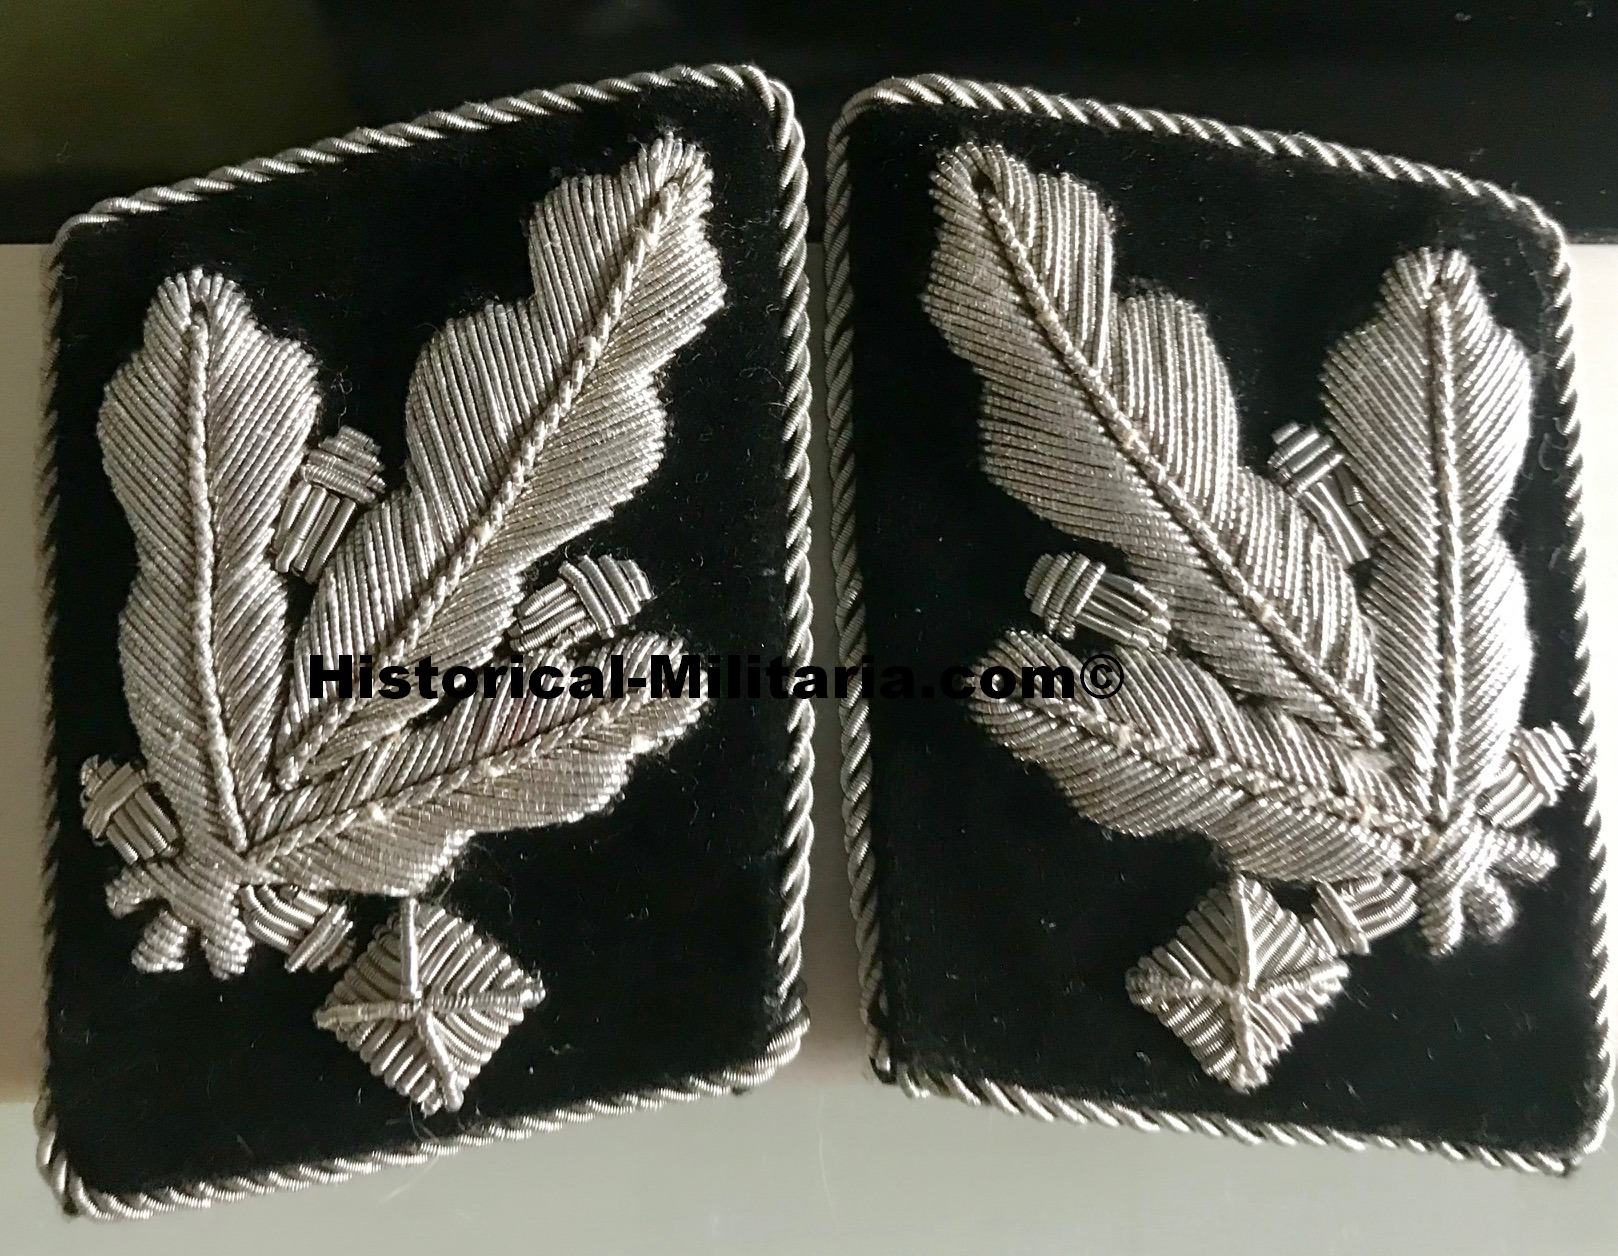 SS-Gruppenführer Set Kragenspiegel + Schulterklappen - Major General SS Set collar tabs + shoulder boards - set da Generale di Divisione della Wafen-SS mostrine e spalline - 1 pair left on stock